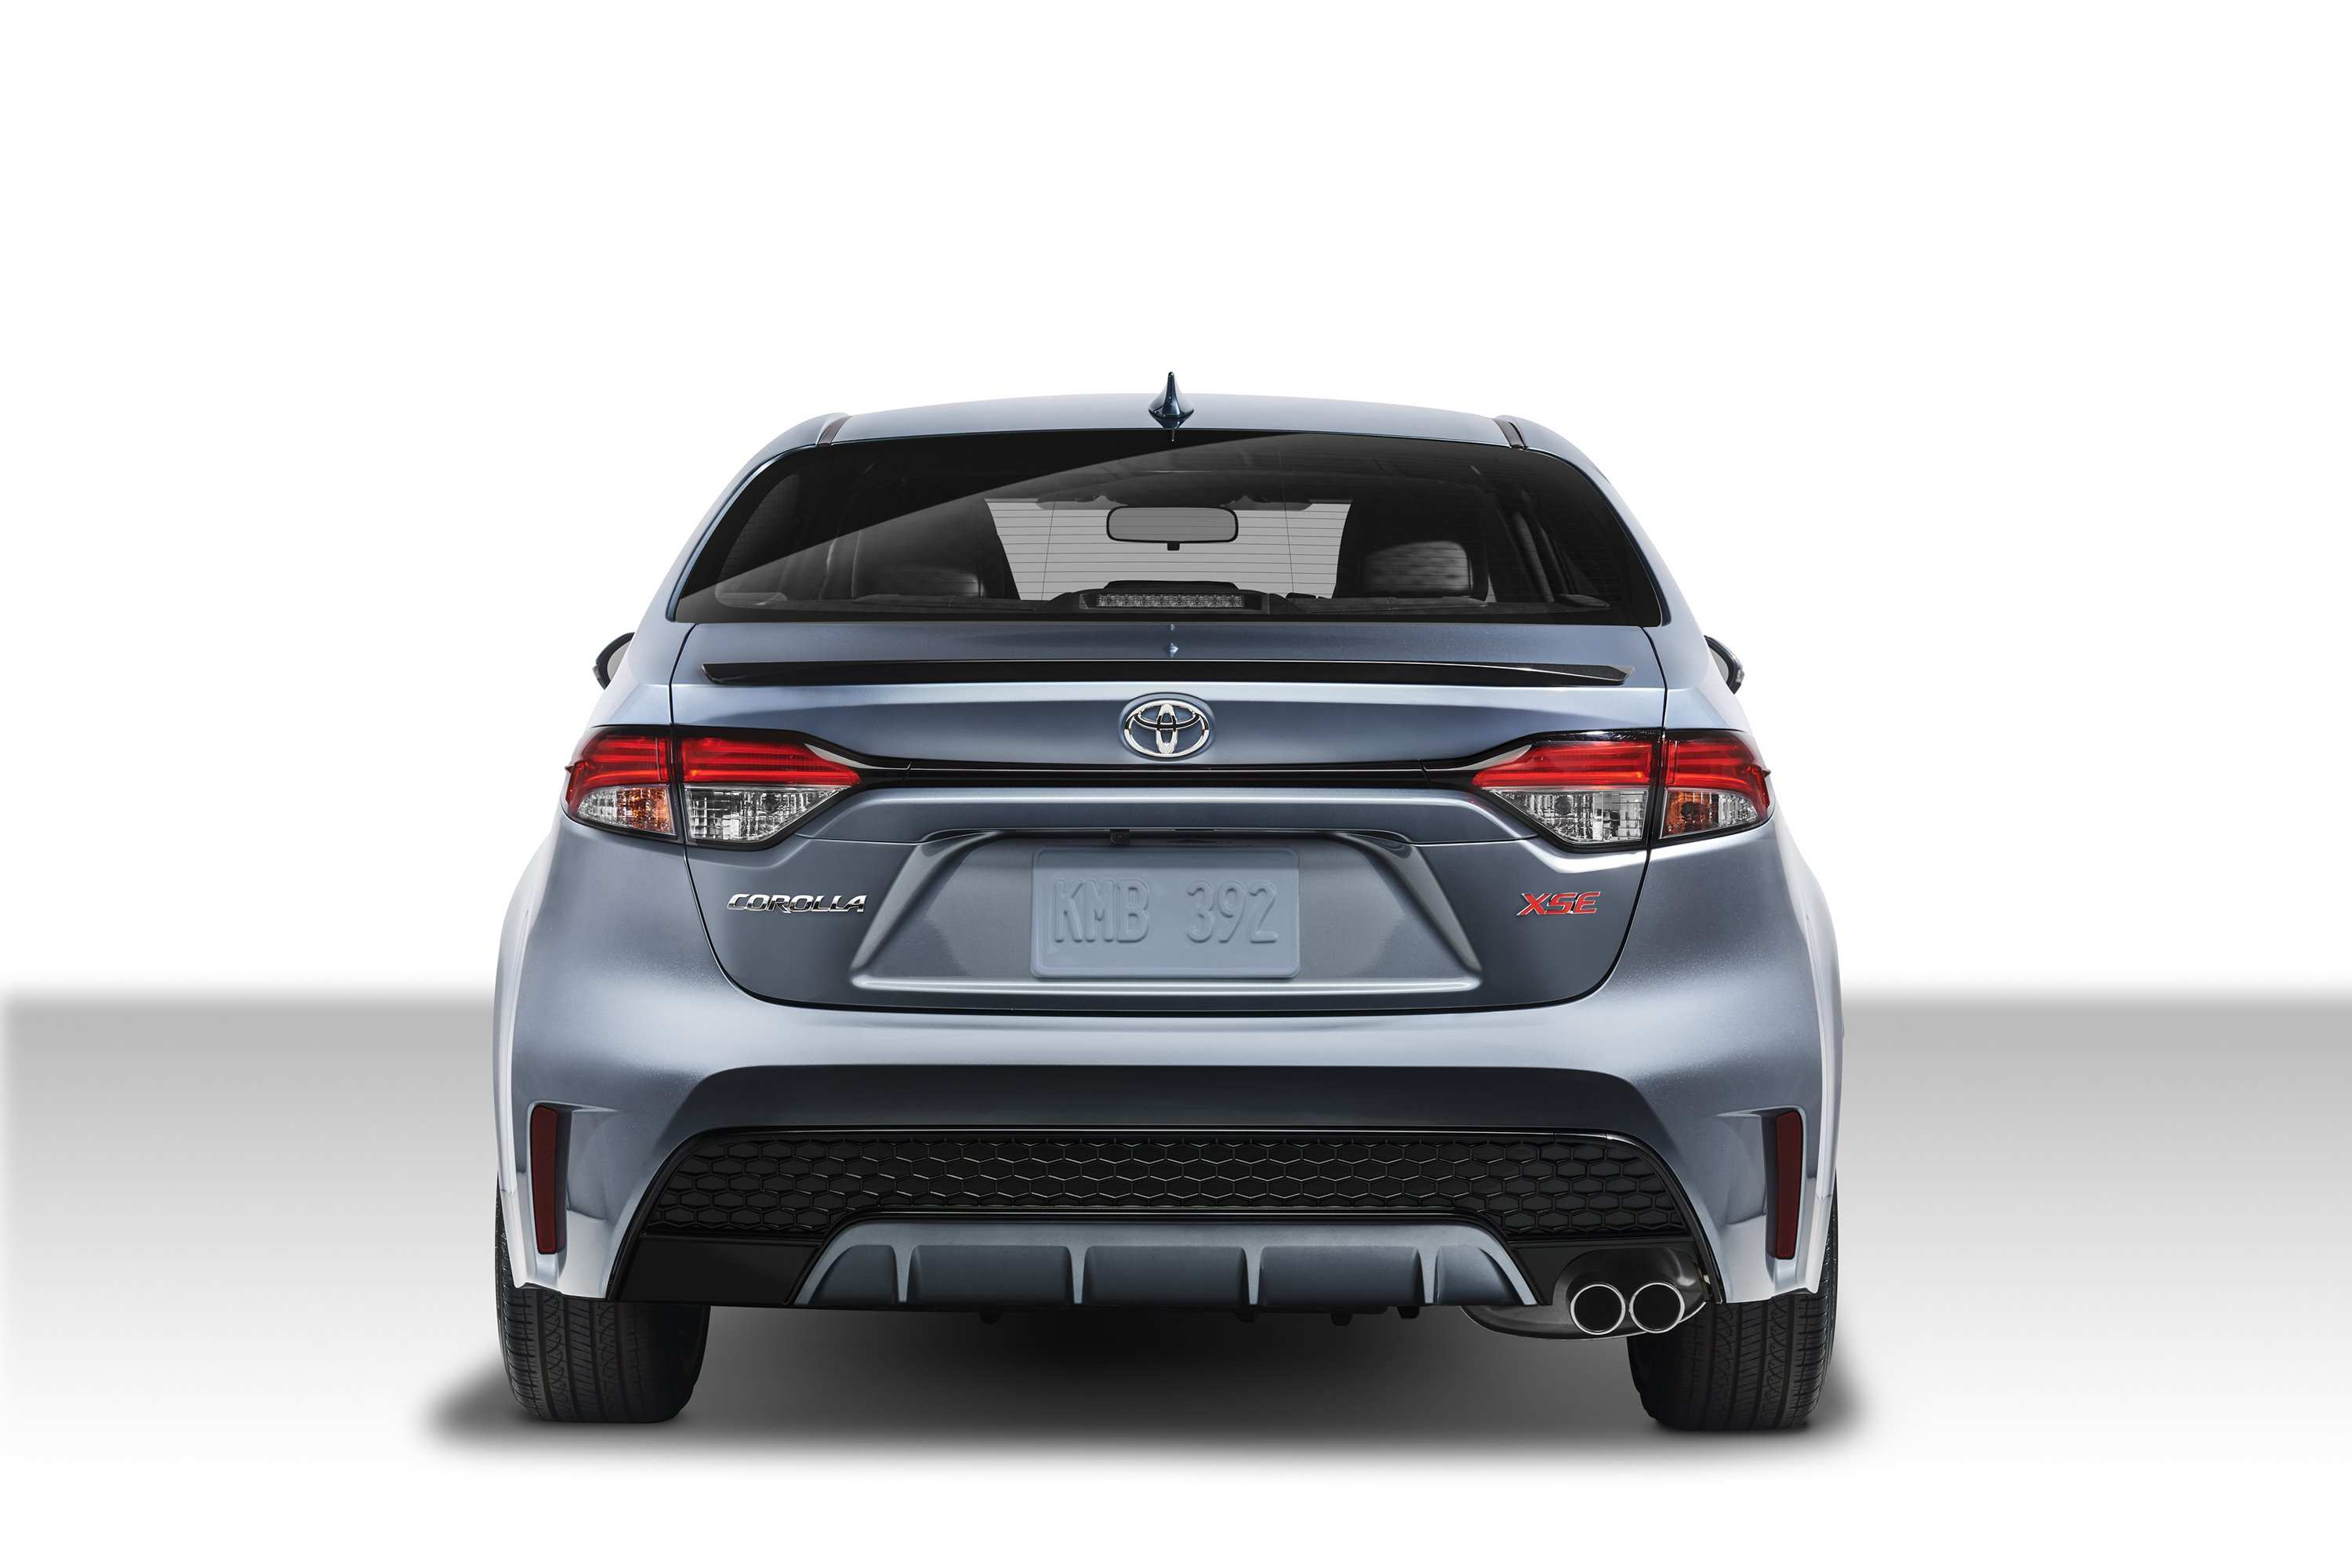 88 Great Toyota Design Competition 2020 Overview for Toyota Design Competition 2020